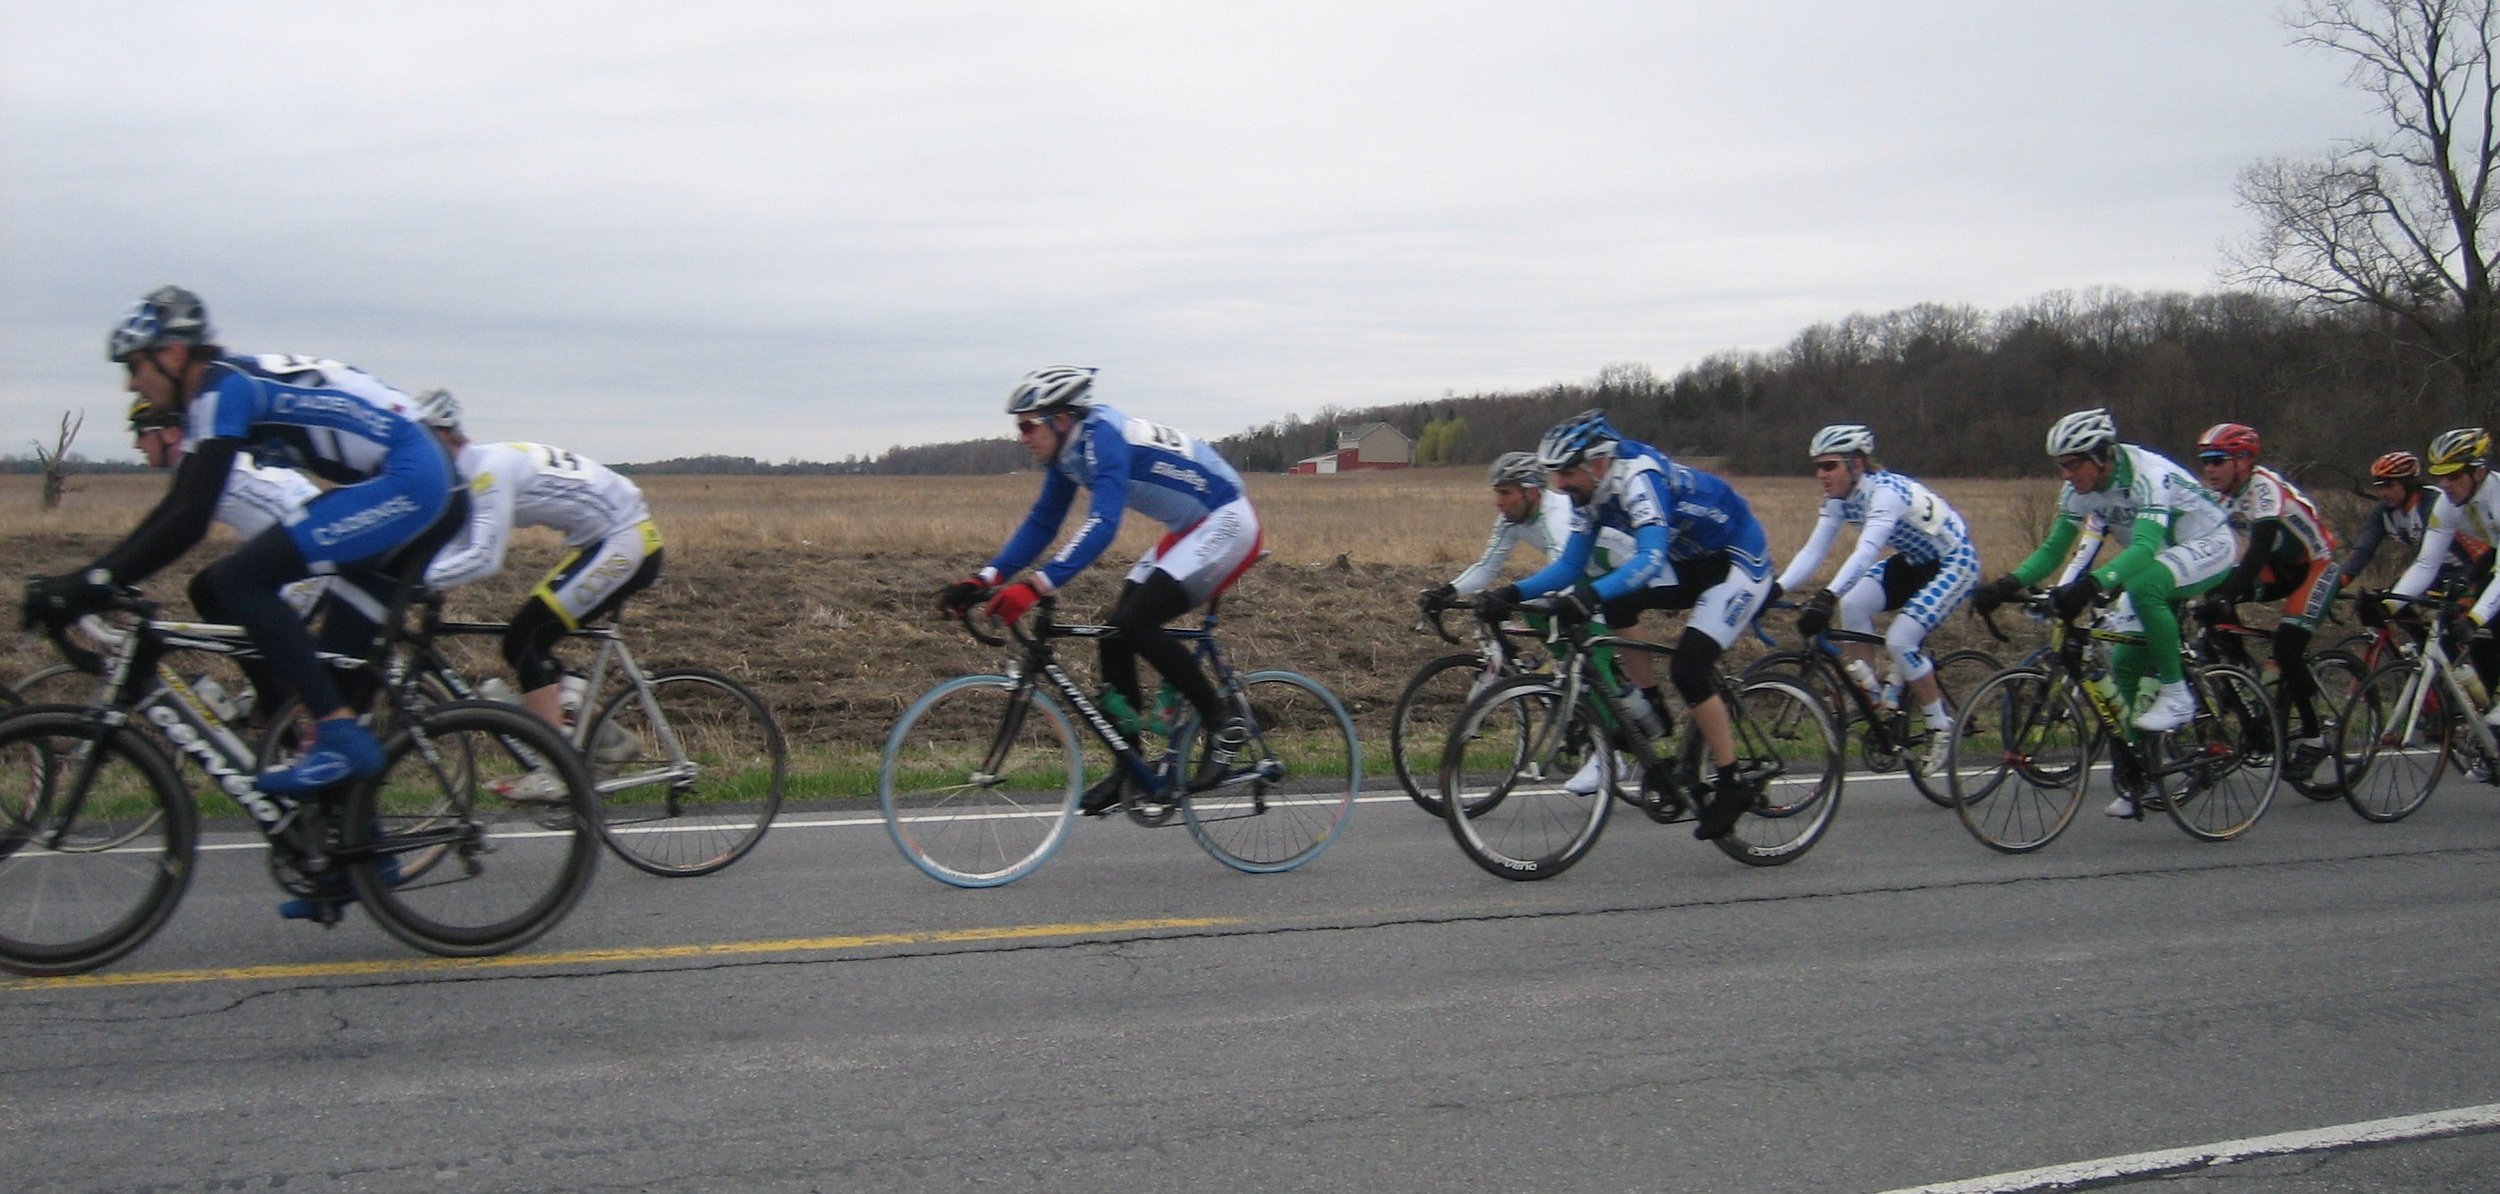 Annual Trooper David Brinkerhoff Memorial  Race  Series on Farm to Market Road in Coxsackie Presented by Capital  Bicycle Racing  Club (CBRC).